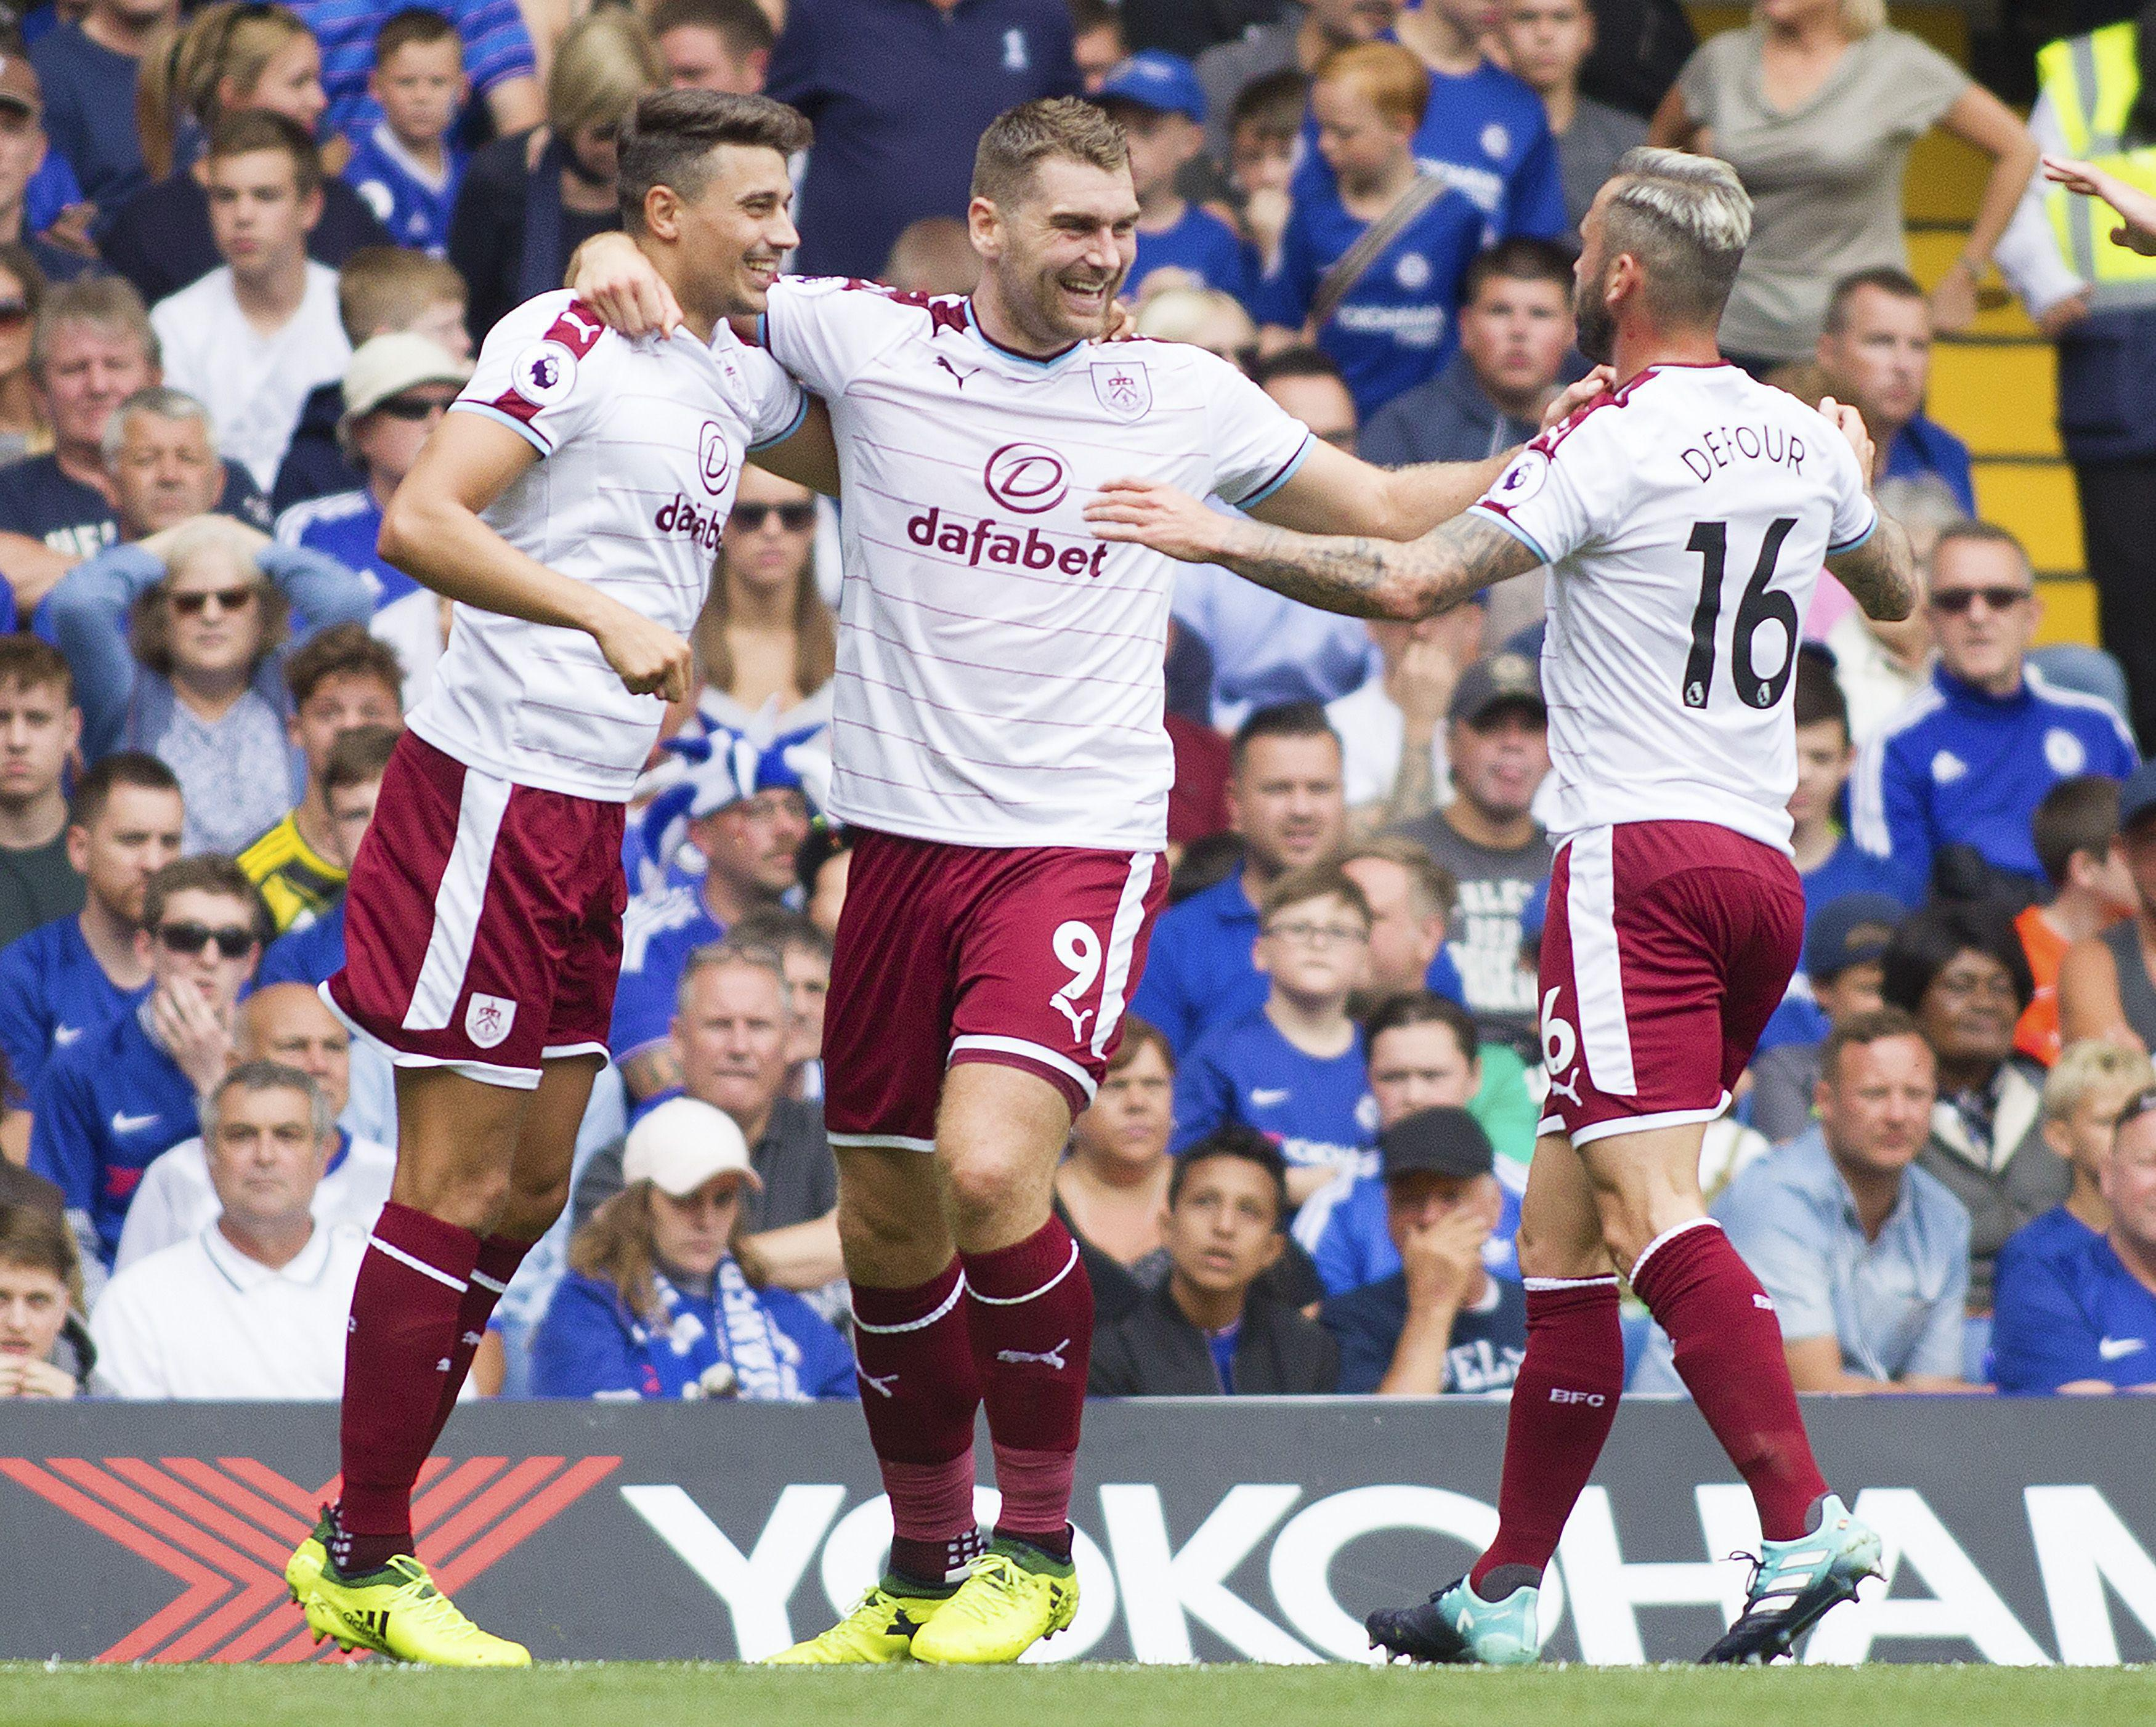 Sam Vokes was the main man as Burnley stunned Chelsea at Stamford Bridge